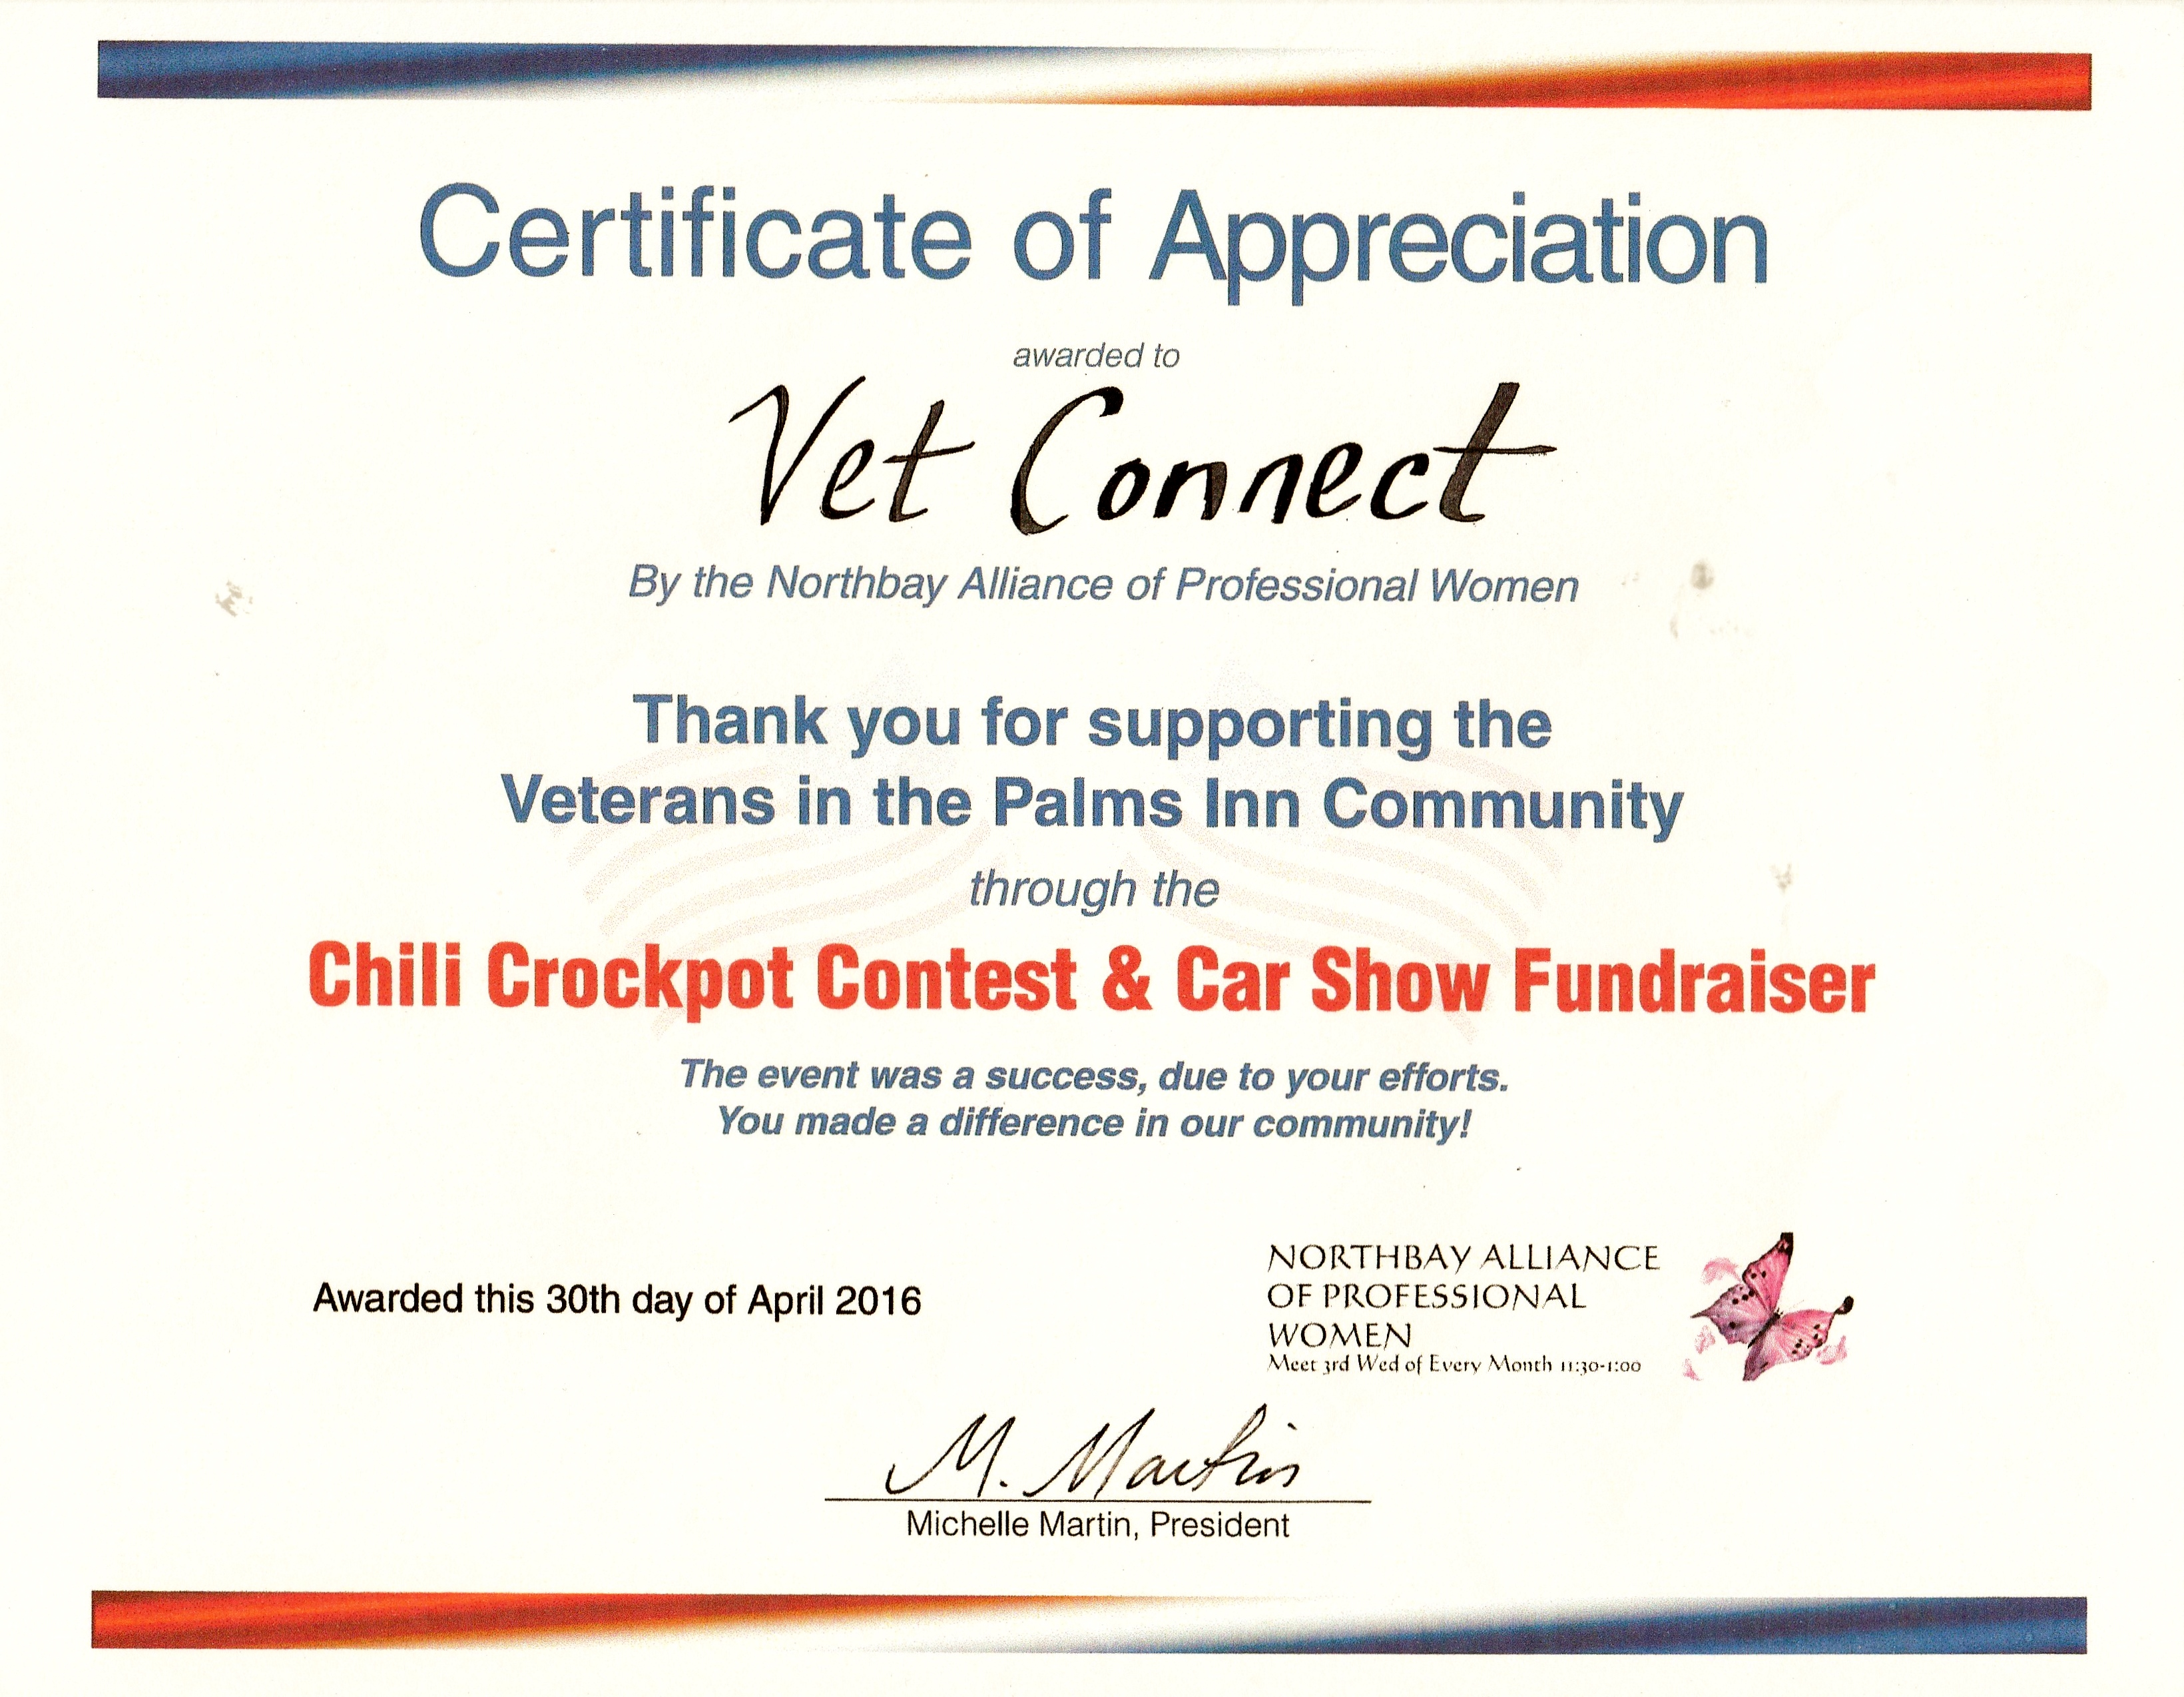 Sonoma county vet connect inc the northbay alliance of professional women awarded us with a certificate of appreciation for our work in supporting the veterans in the palms inn community yadclub Image collections